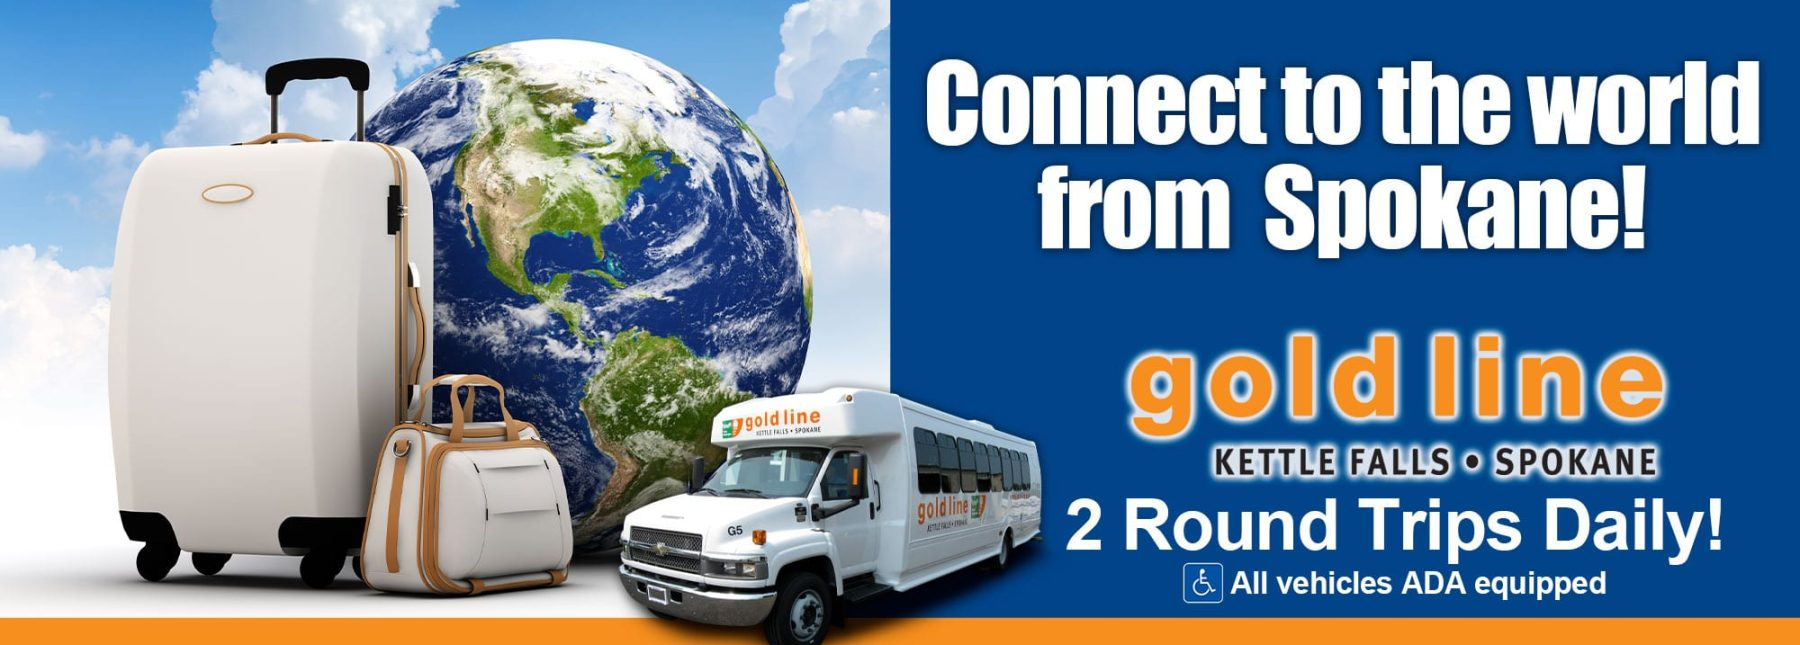 Slide2 Goldline Connect To The World V4 Bg 2000x770